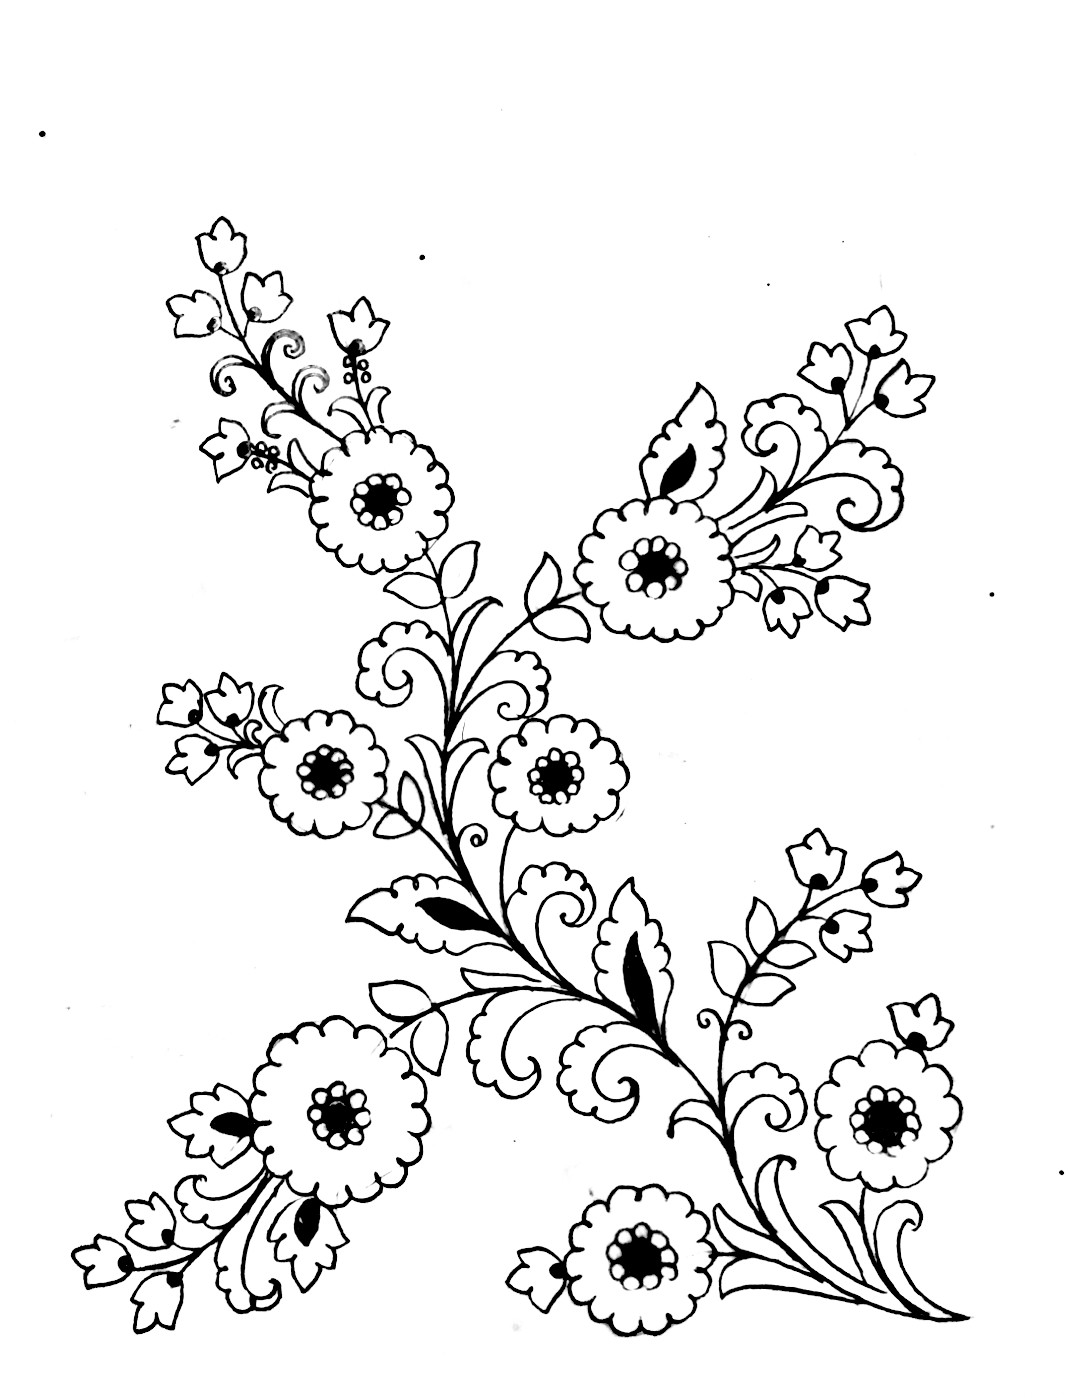 Flowers design patterns drawing for hand emroidery designs/ how to make embrodiary design's sketches on paper. Saree design pencil sketch for hand work.